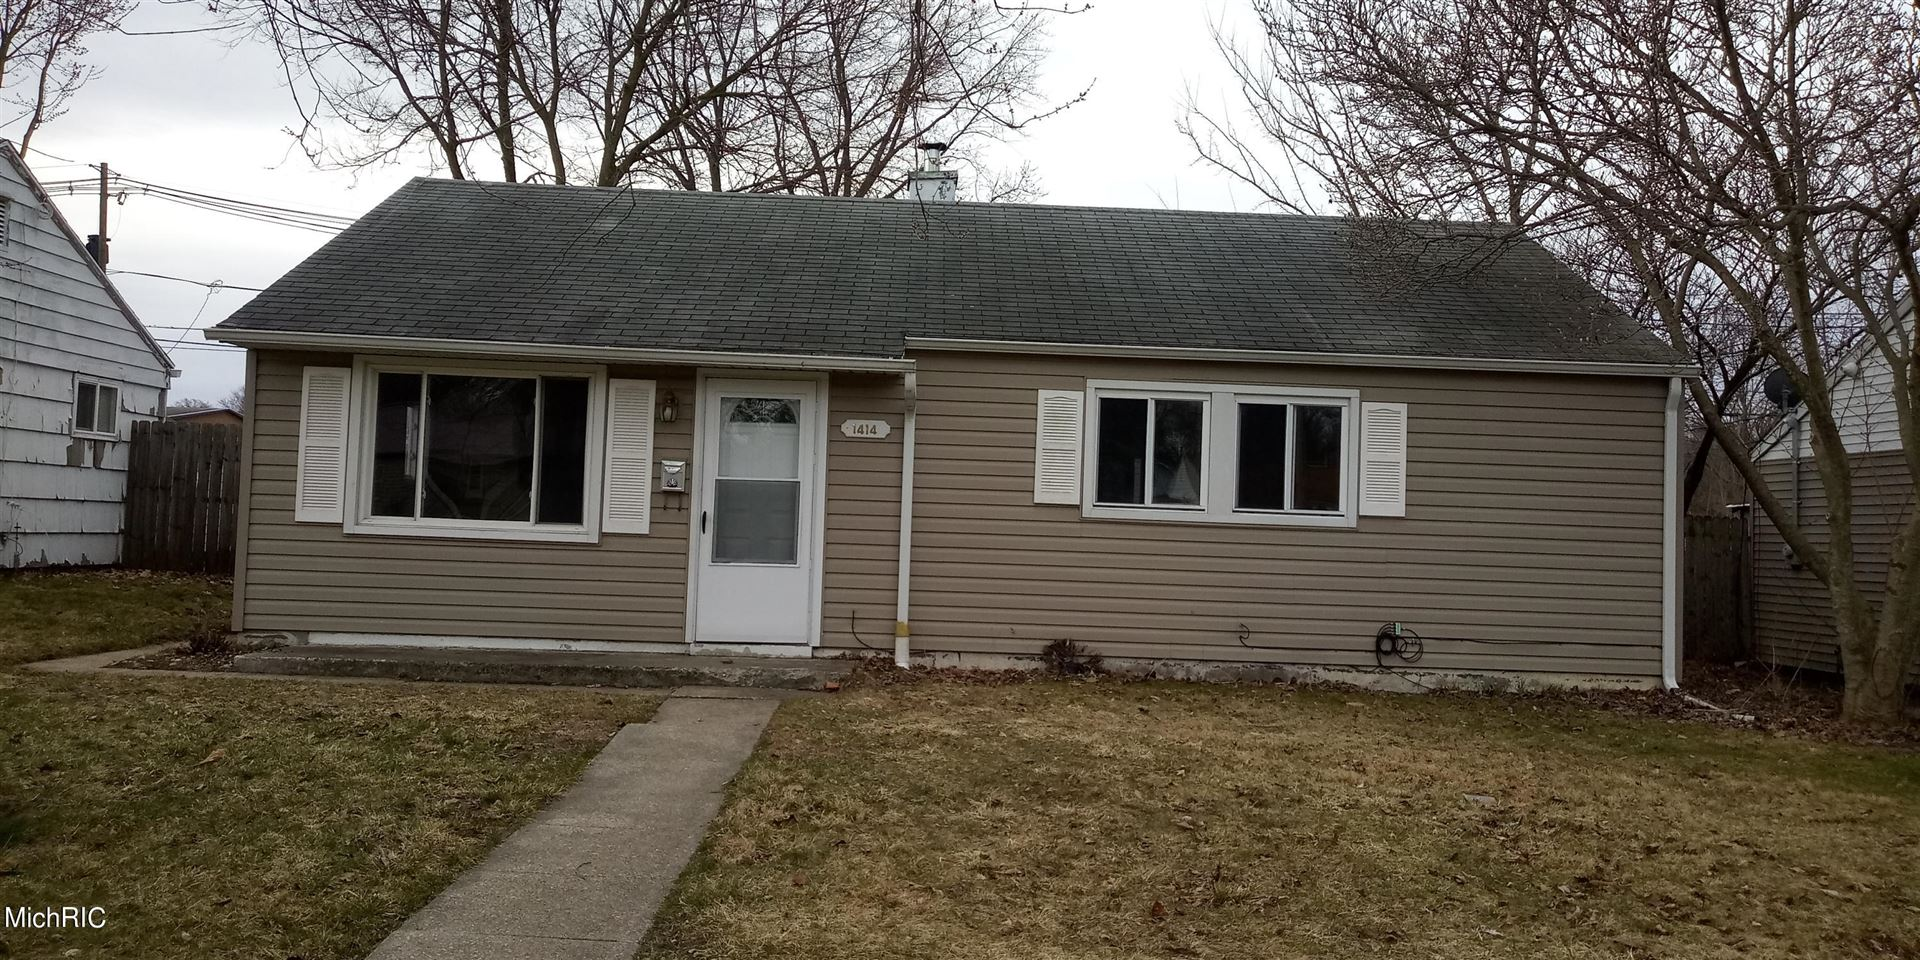 1414 Merrifield Avenue, Niles, MI 49120 - MLS#: 21005288